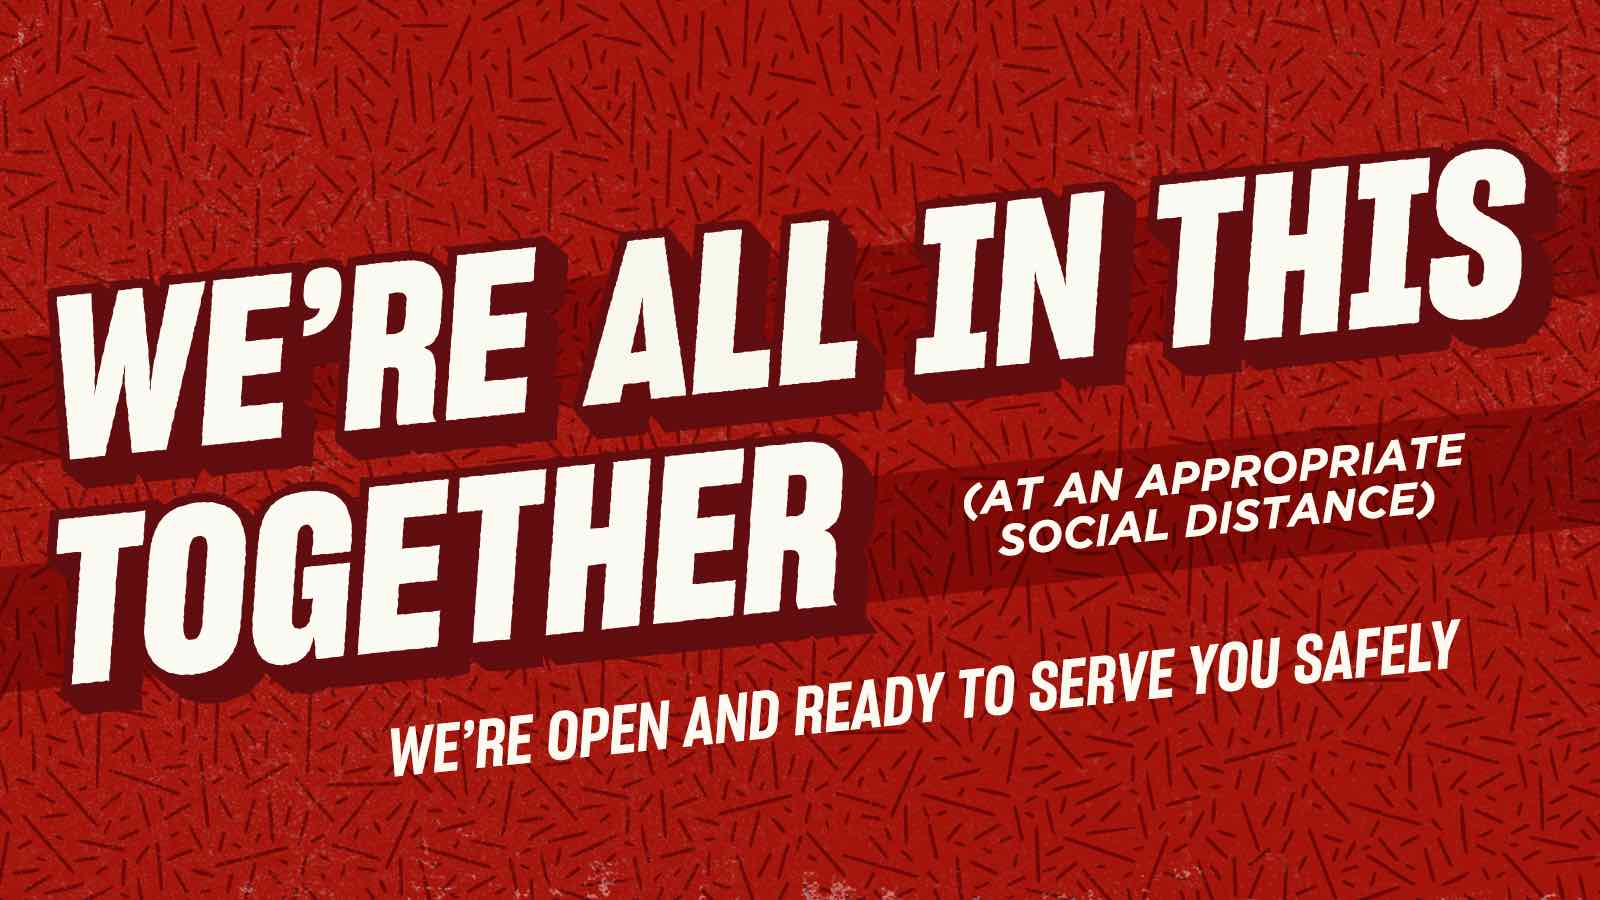 We're All In This Together (at an appropriate social distance) - We're open and ready to serve you safely.